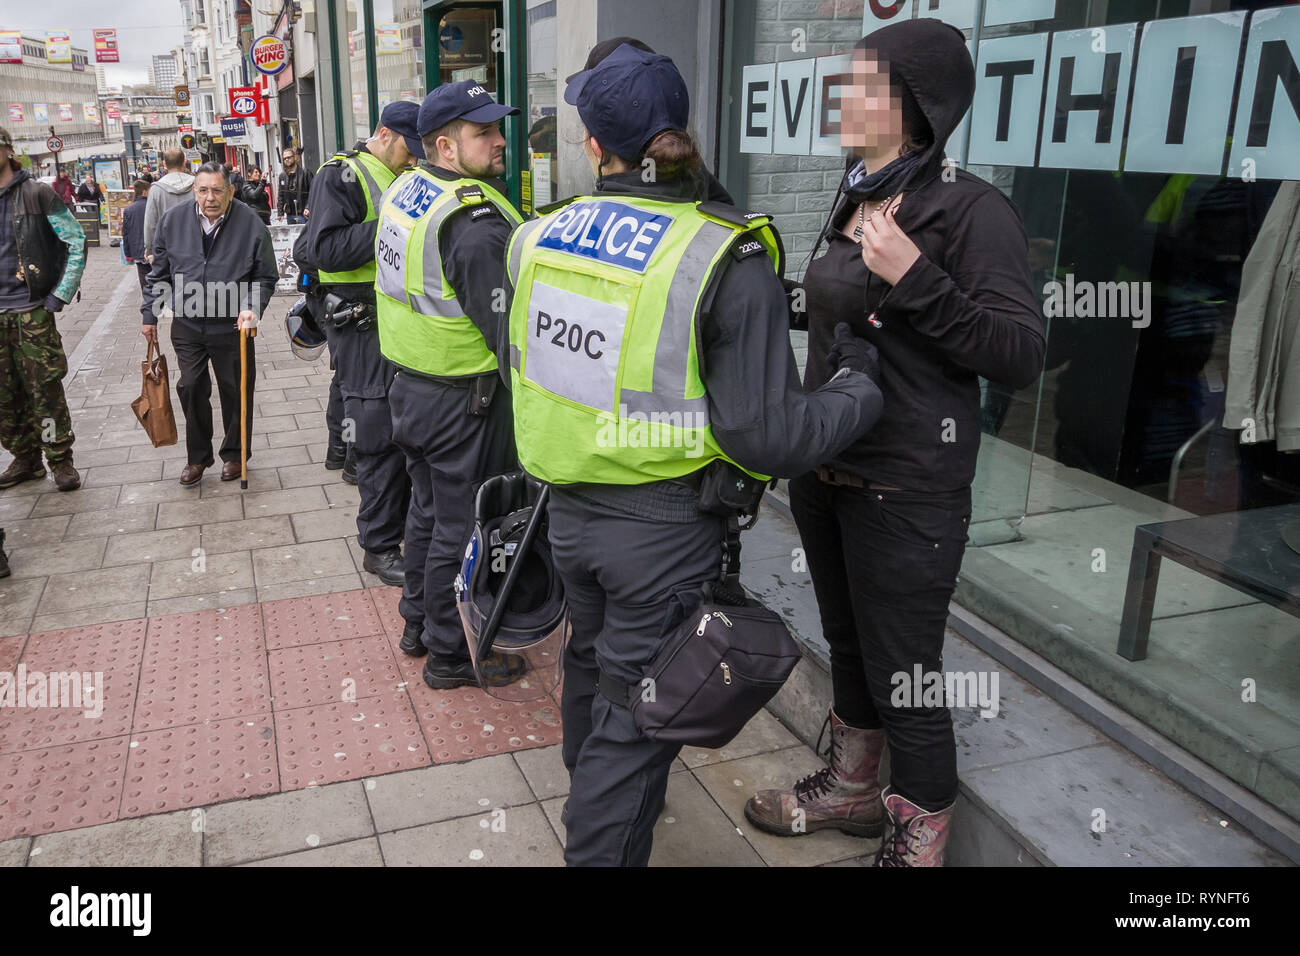 Stop and search procedures on anti-fascist protesters in Brighton, UK - Stock Image